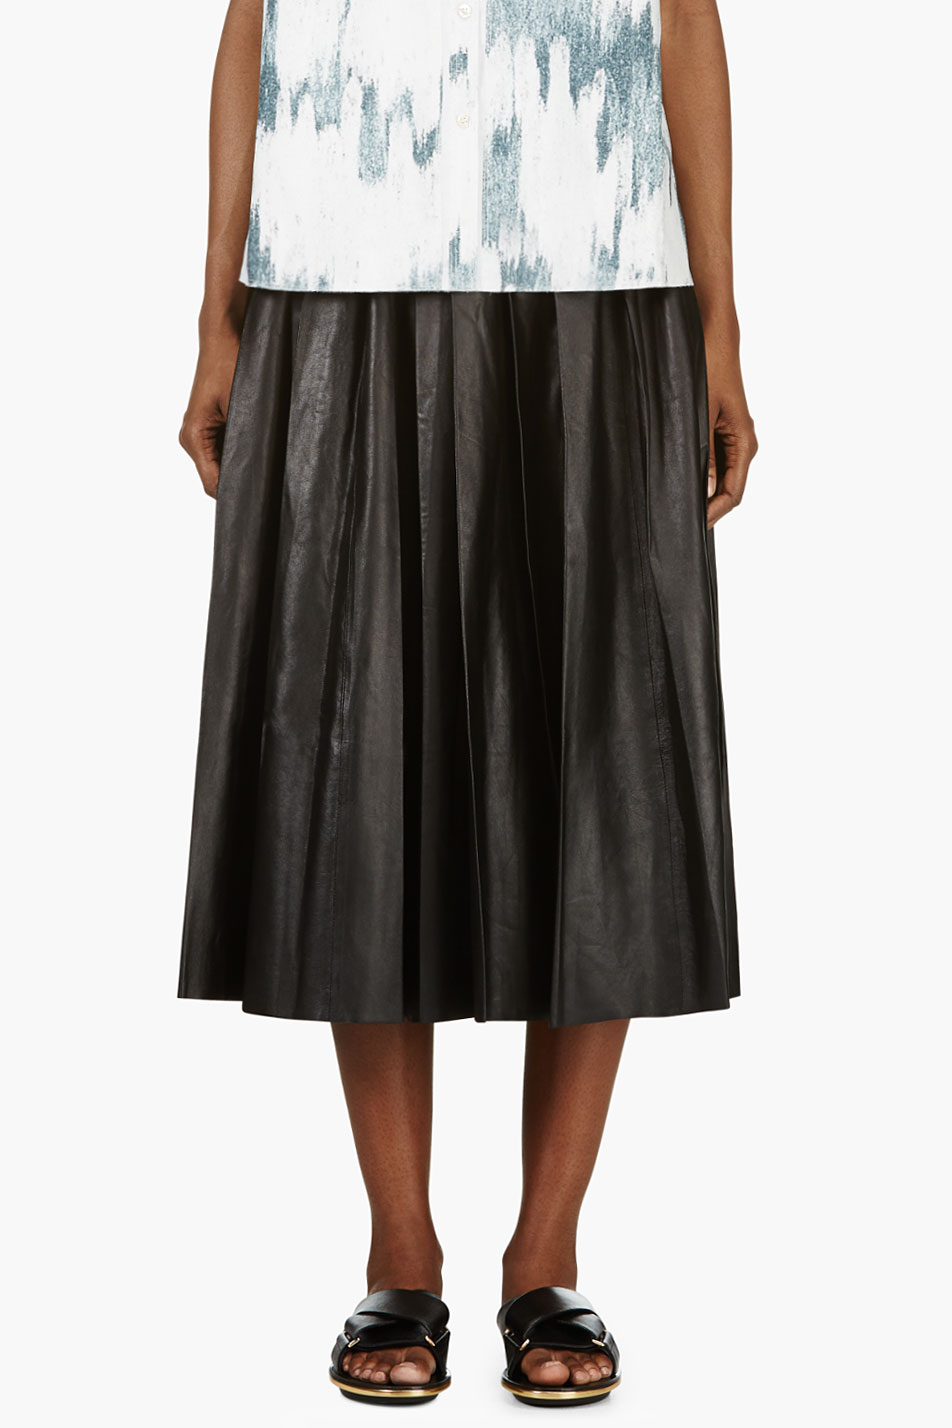 blk dnm black leather pleated skirt